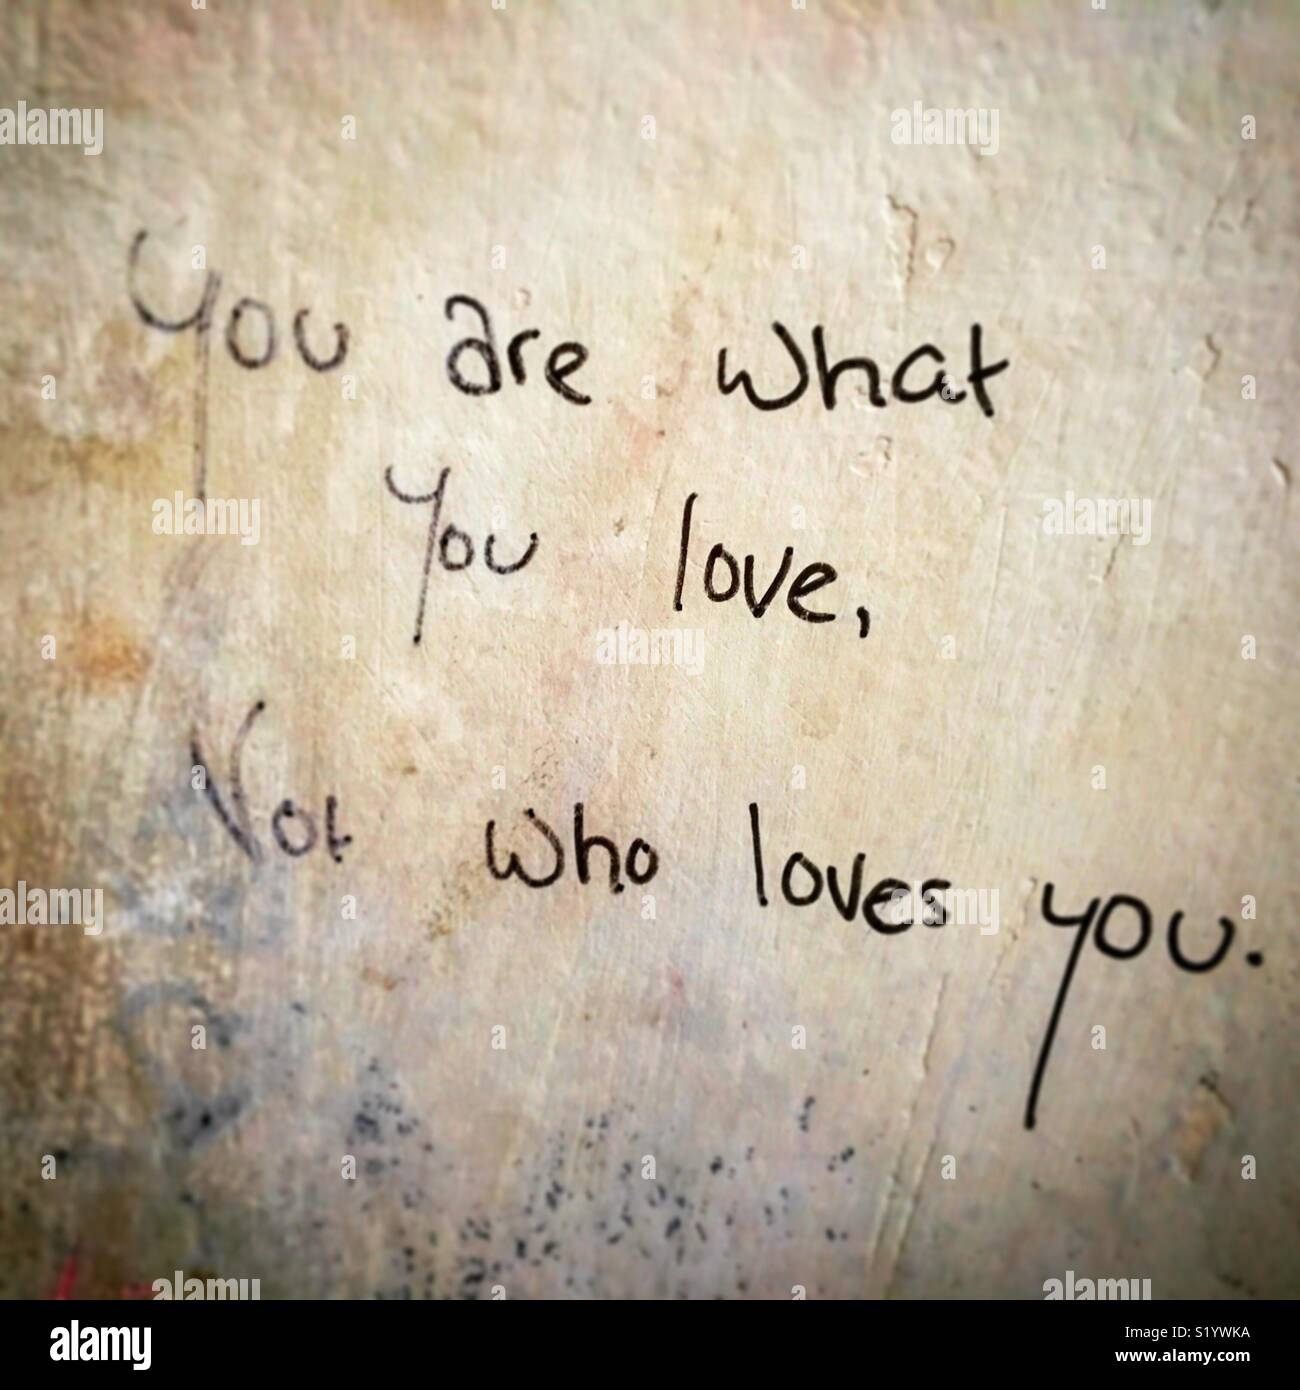 Quotes On A Public Wall About Love And Self Awareness Stock Photo